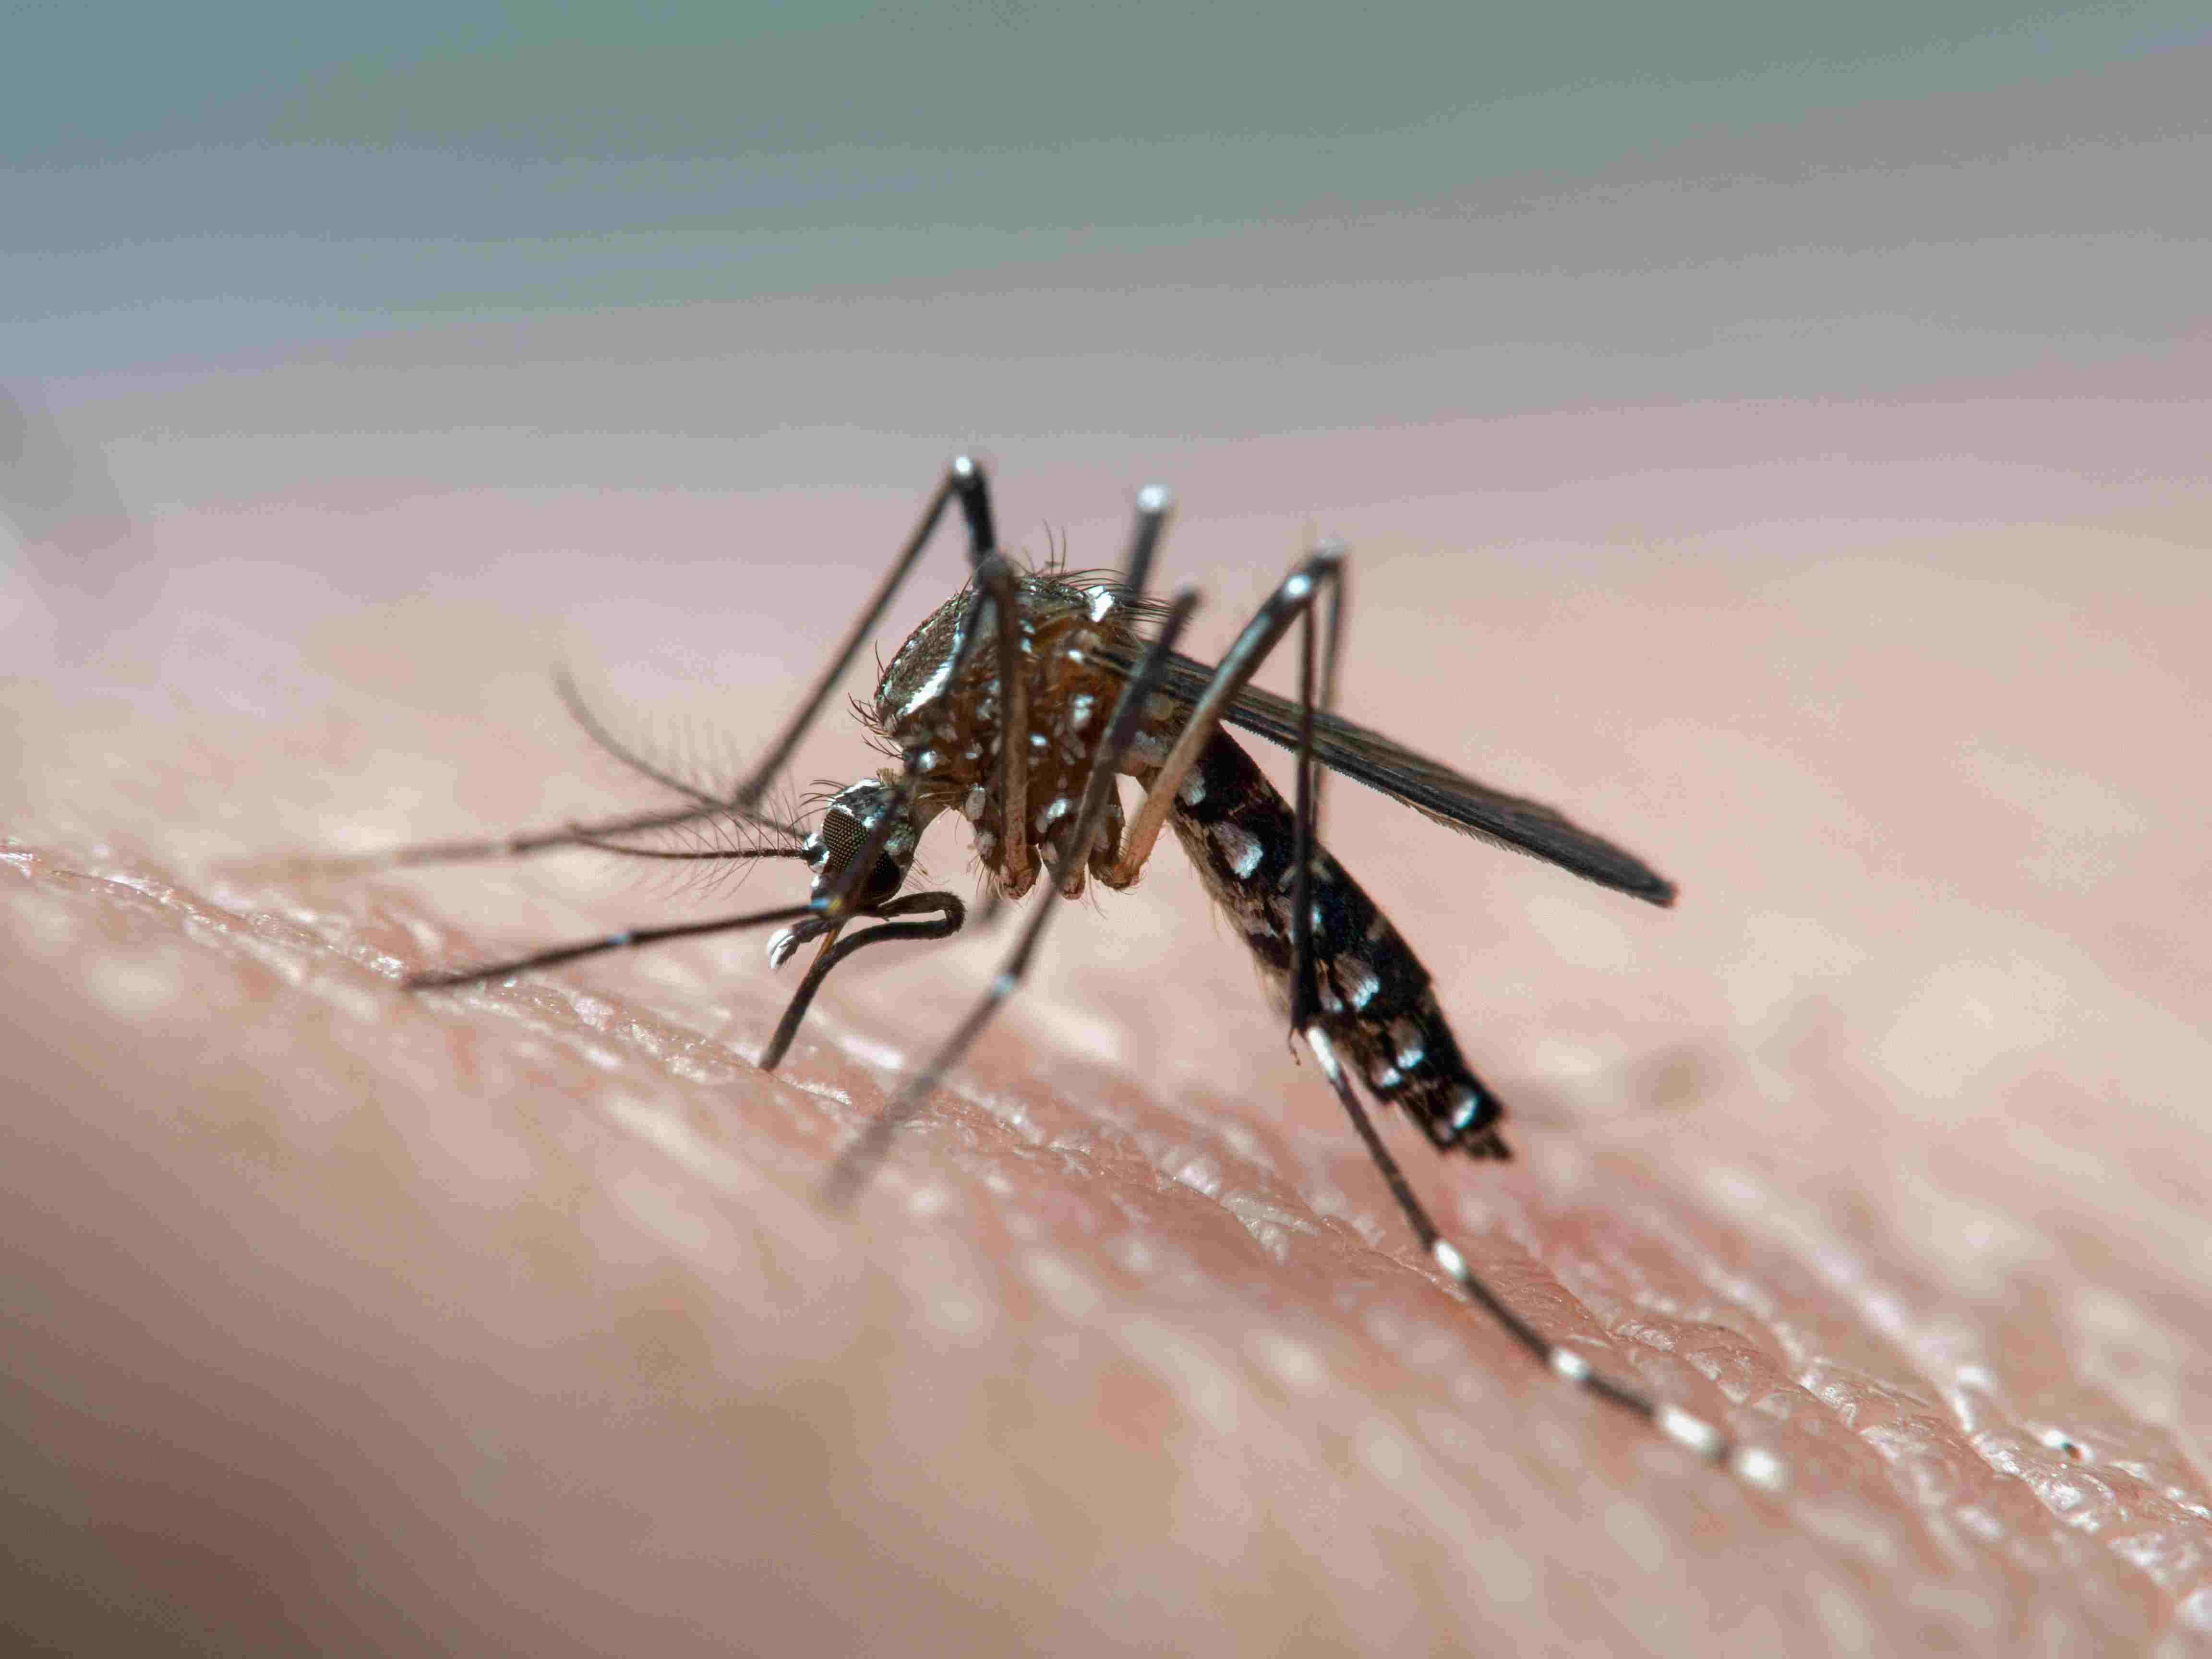 An aedes aegypti mosquito biting a person